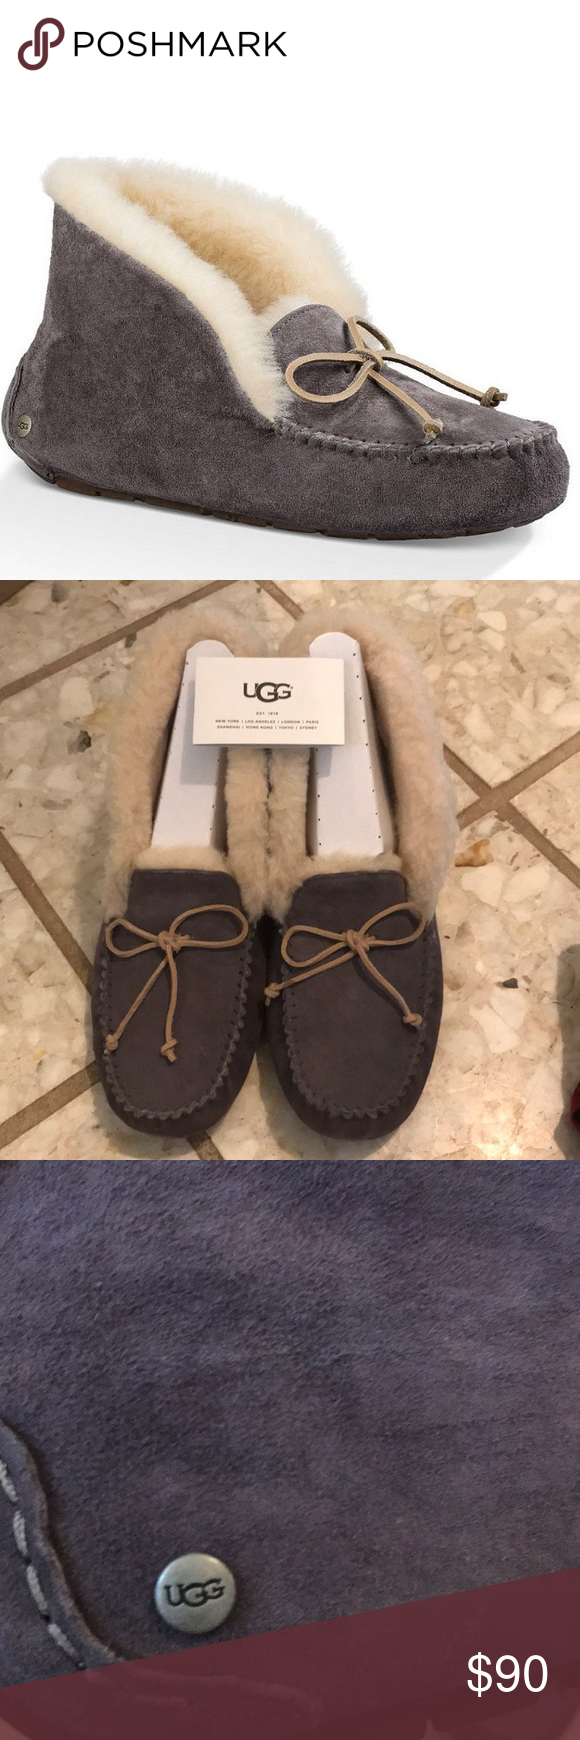 6865016e62eb NEW in box UGG Alena Waterproof Suede Slippers UGG® Alena Bow Detail  Waterproof Suede Slippers. Can be worn as high top or folded over.